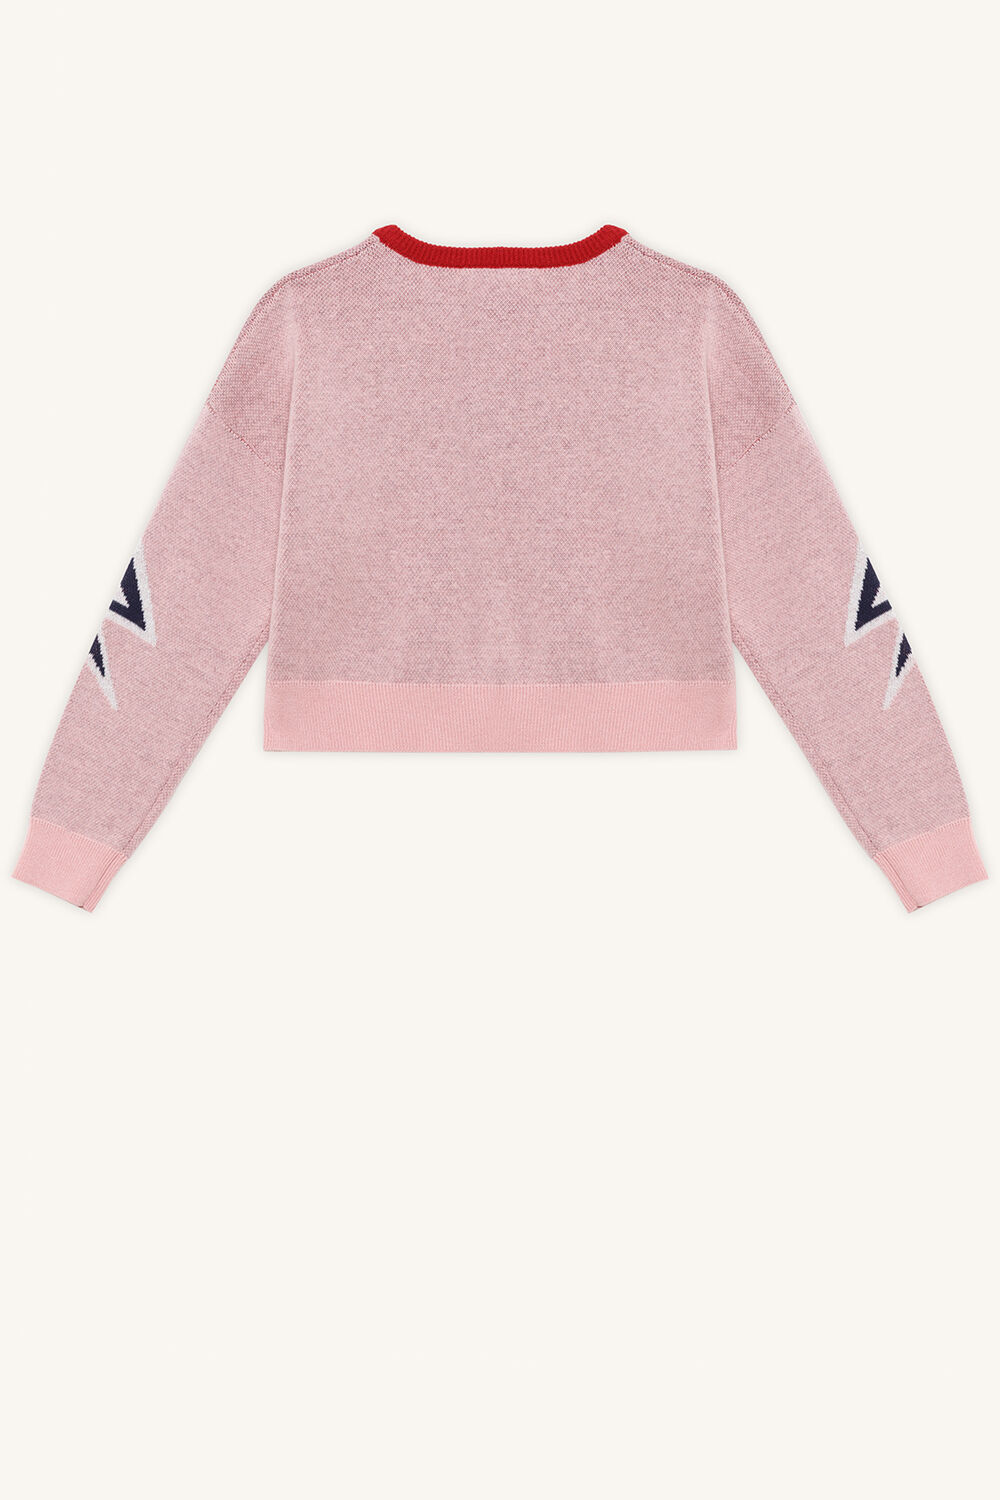 GIRL KNIT SWEAT TOP in colour PEACHSKIN